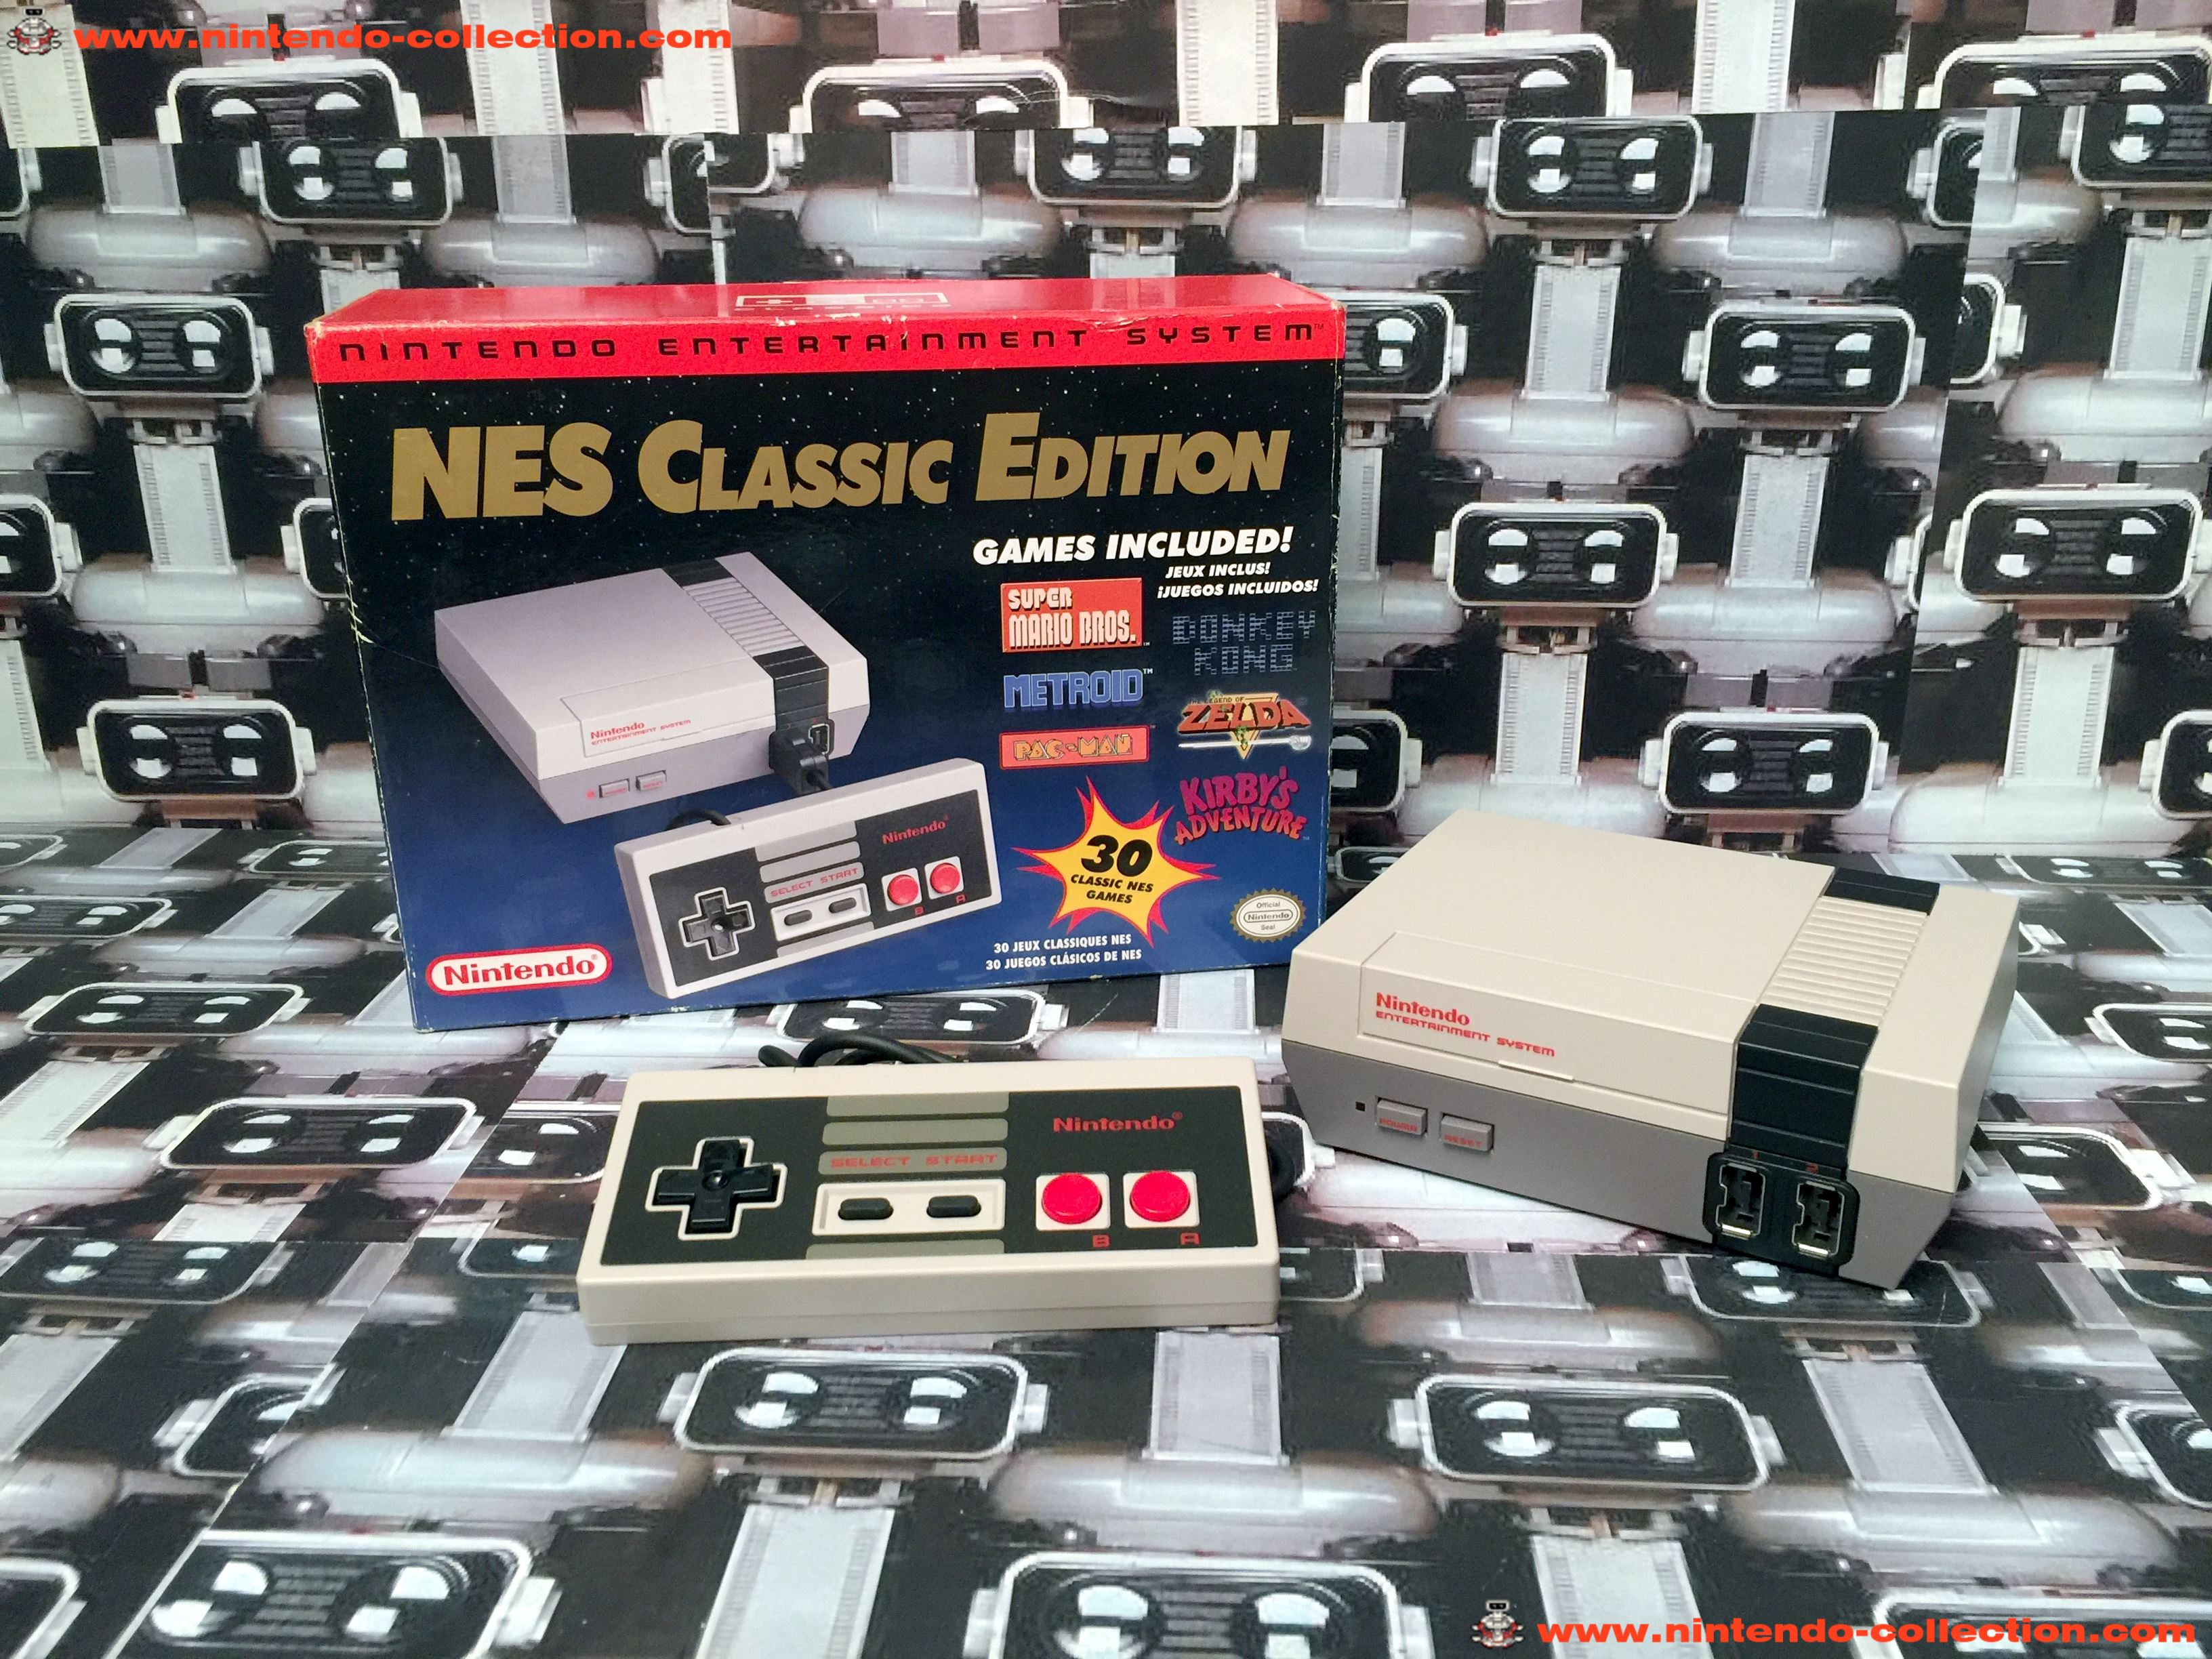 www.nintendo-collection.com_-_Nintendo_Classic_Mini_Nes_Nintendo_Entertainment_system_US_Version_Amé